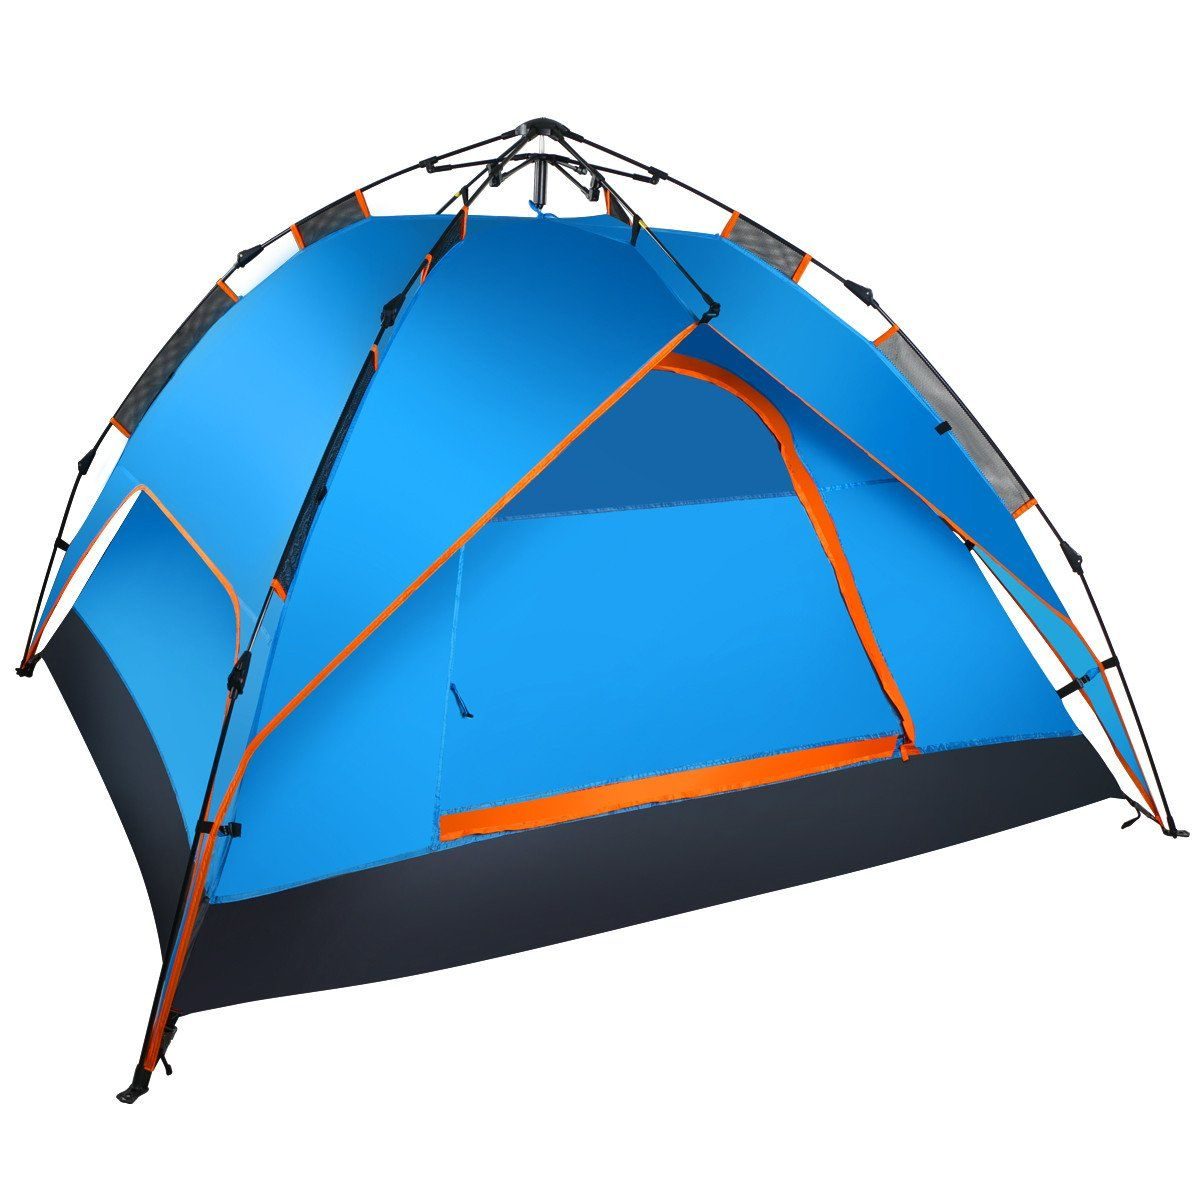 Leapair 2-3 Person Pop Up Hydraulic Pressure Automatic Tent  sc 1 st  Pinterest & WolfWise 2 Person Backpacking Tent | Tents Rain fly and Tent stakes